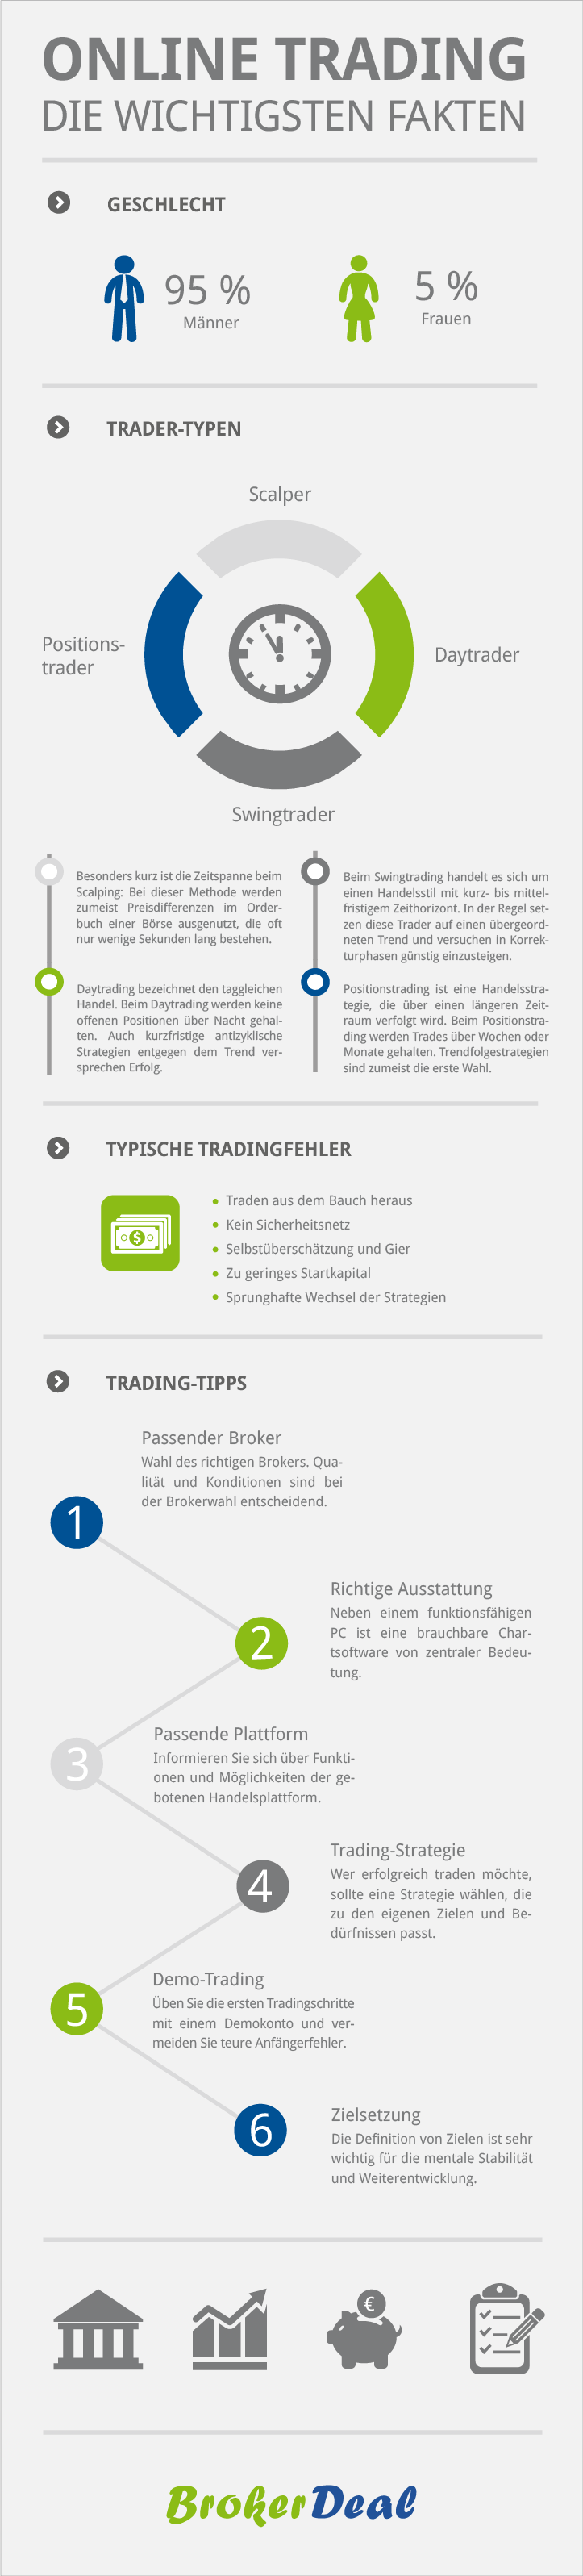 Online Trading Infographic